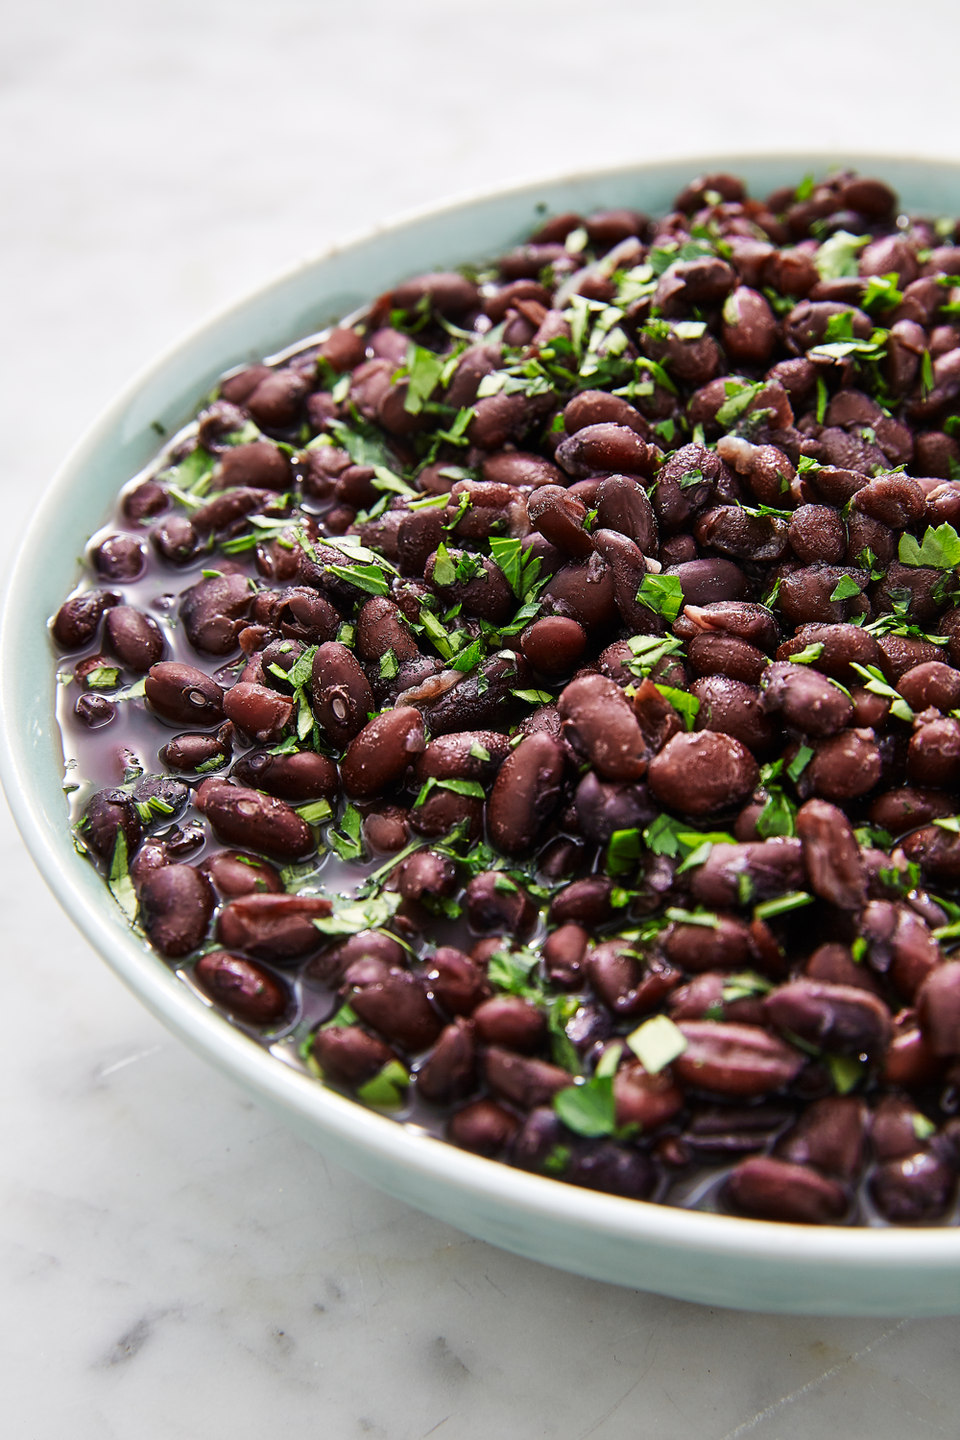 """<p>Requires more effort than heating up a can, but so worth it. </p><p>Get the recipe from <a href=""""https://www.delish.com/cooking/a25656923/how-to-cook-black-beans/"""" rel=""""nofollow noopener"""" target=""""_blank"""" data-ylk=""""slk:Delish"""" class=""""link rapid-noclick-resp"""">Delish</a>. </p>"""